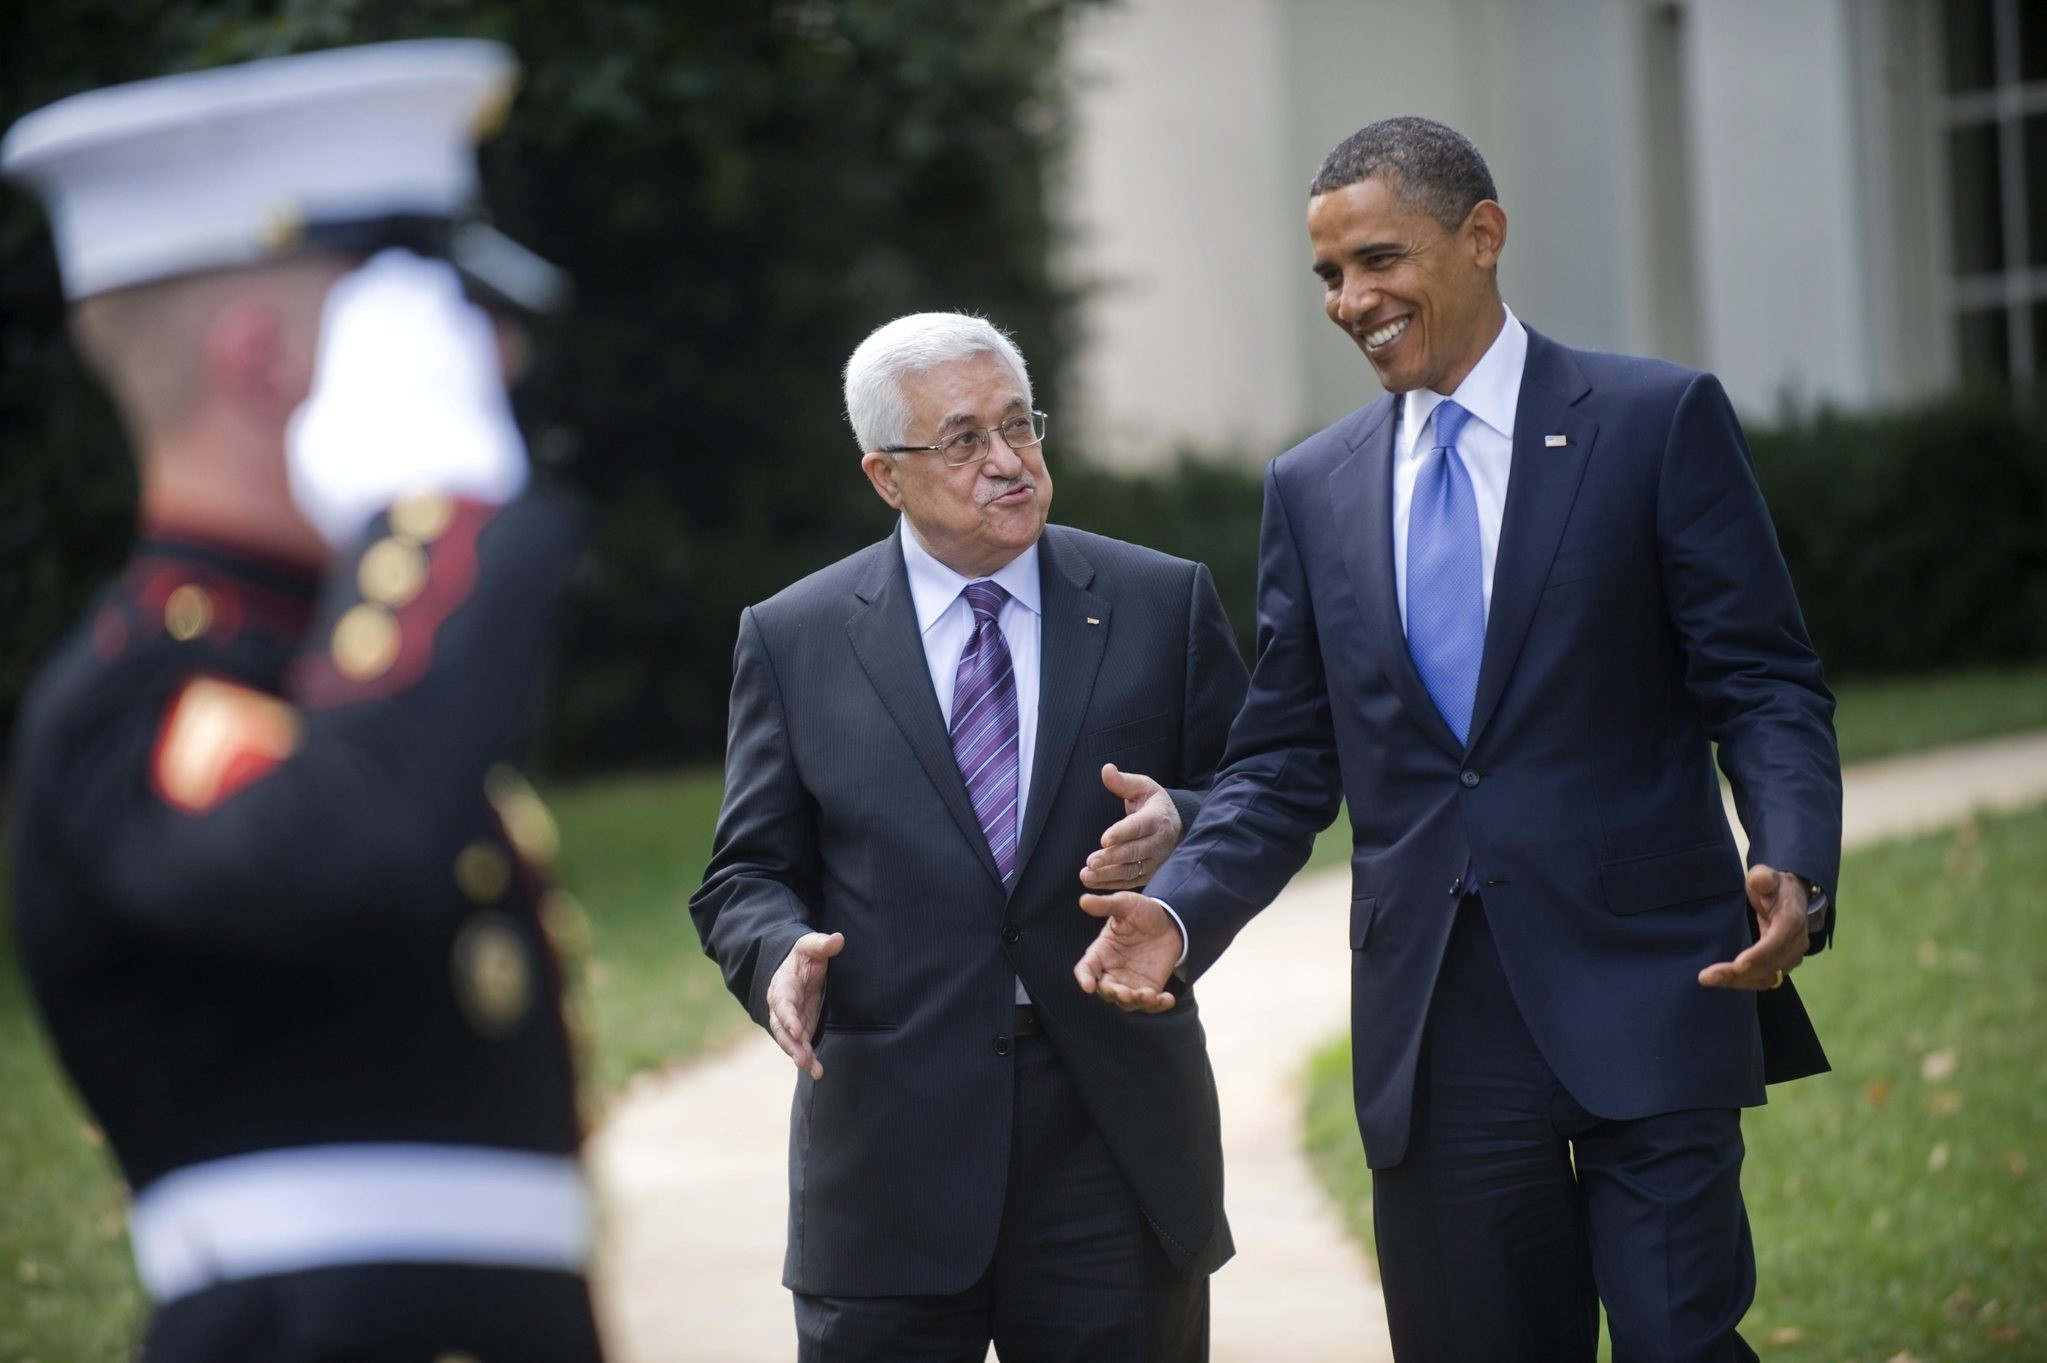 US President Barack Obama (R) talks with Palestinian Authority President Mahmoud Abbas (C), after a meeting in the Oval Office of the White House in Washington, DC, USA. (EPA Photo)